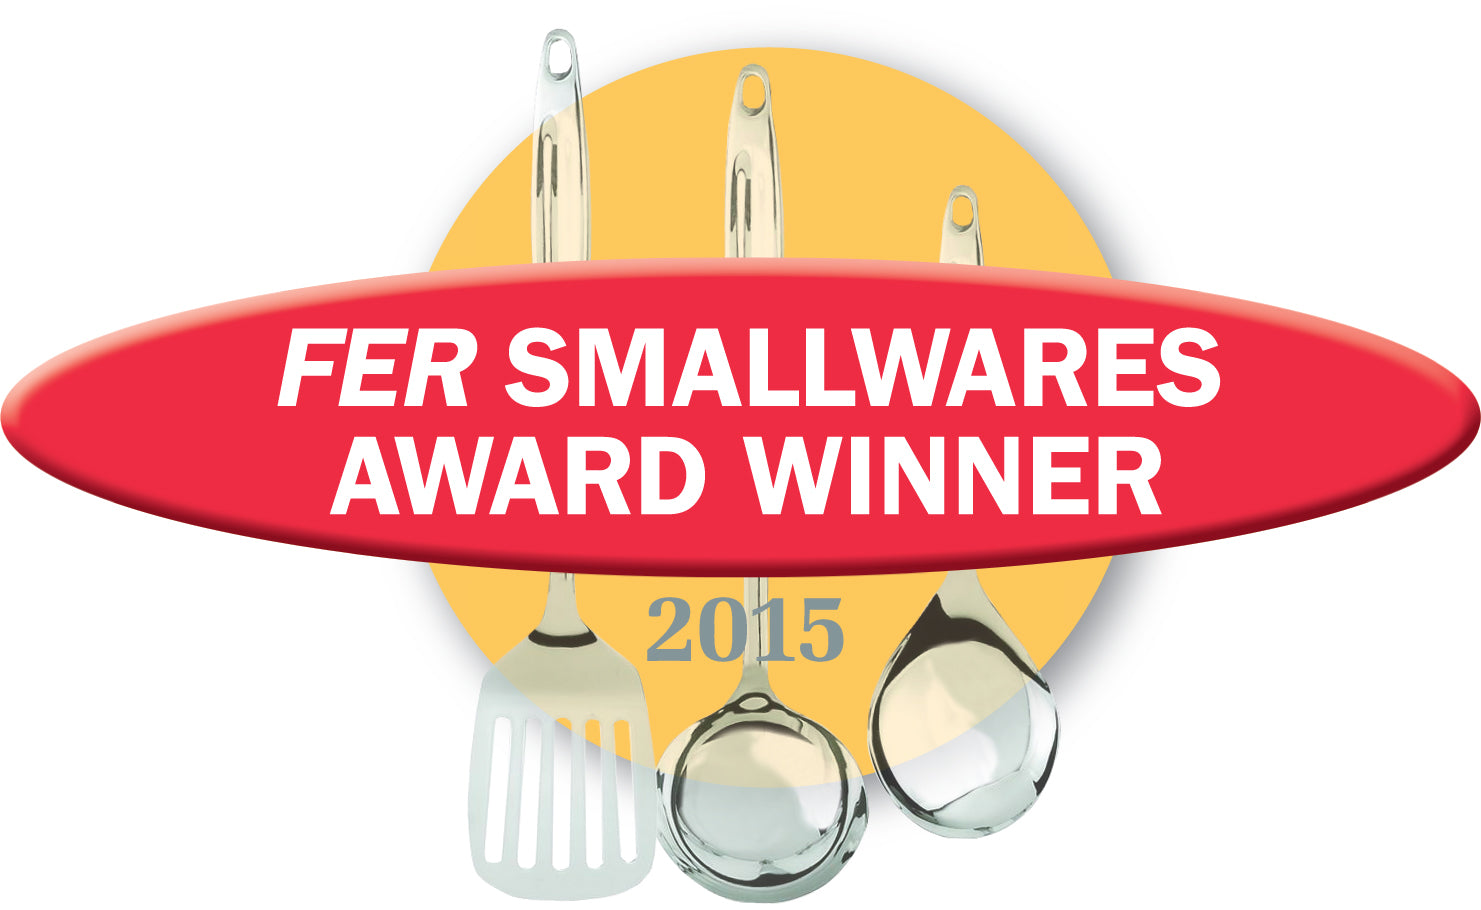 FER 2014 Smallwares Award Winner